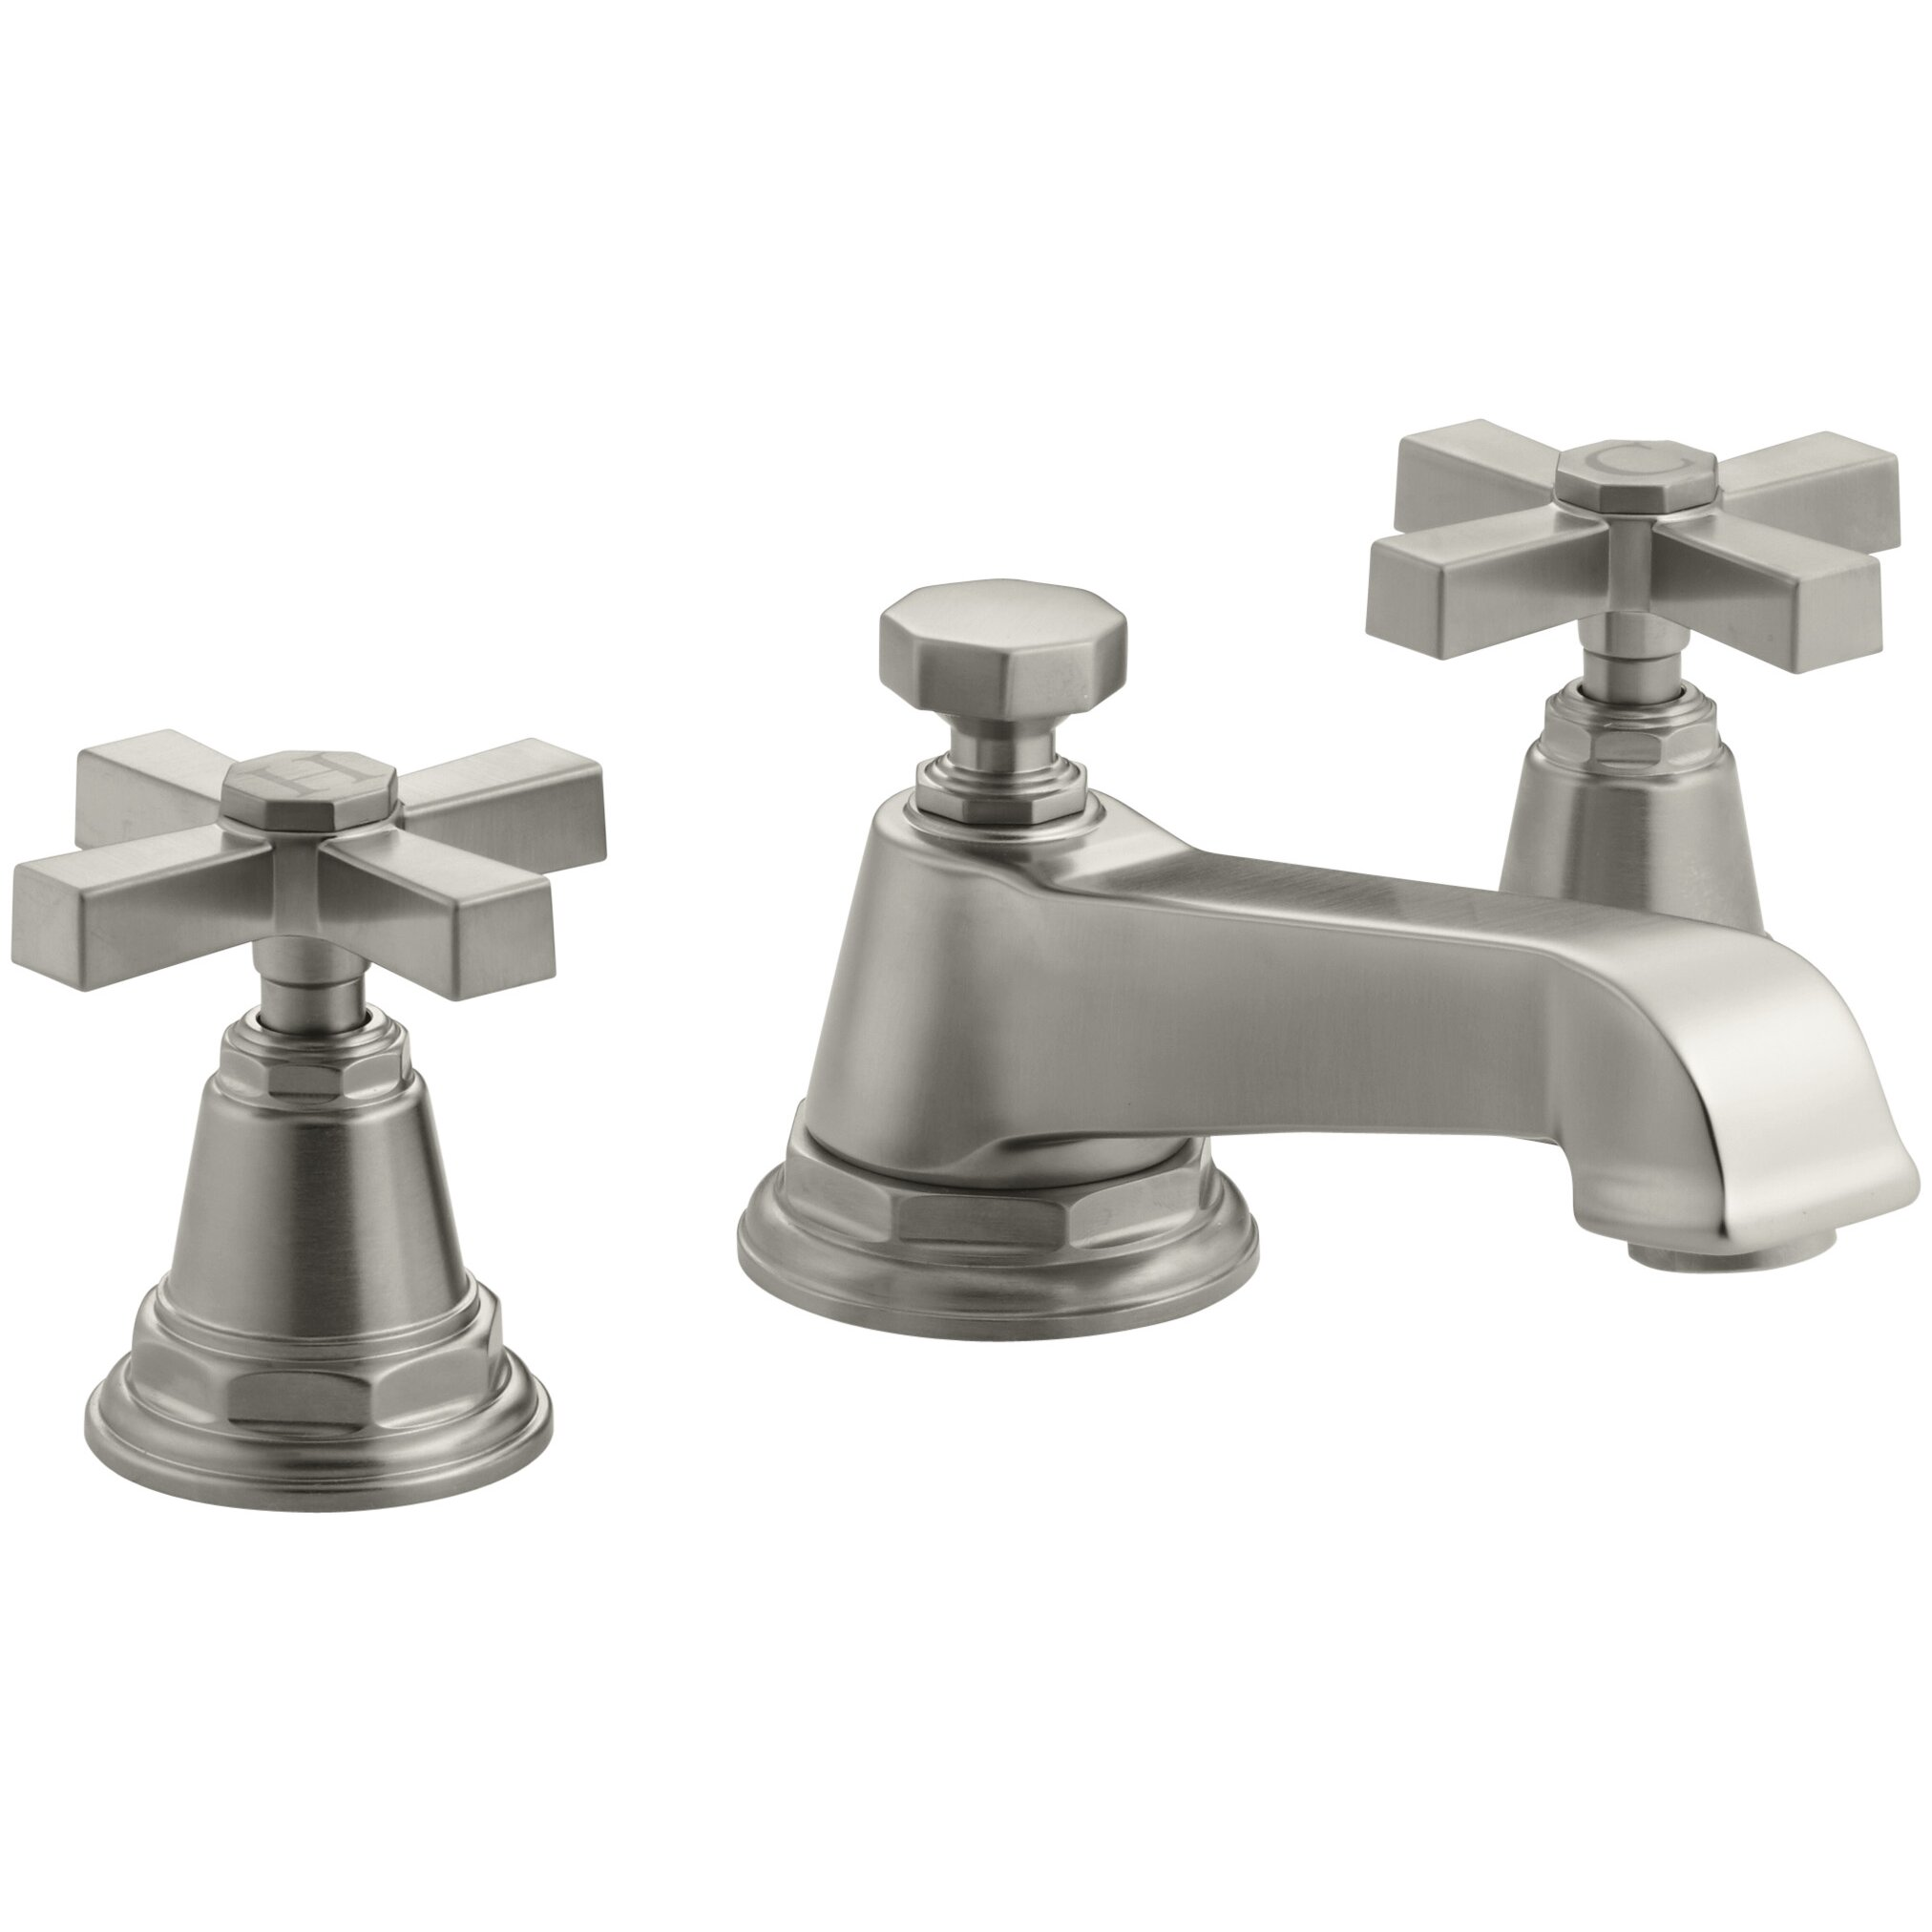 Kohler Faucet Reviews : ... Pure Widespread Bathroom Sink Faucet with Cross Handles by Kohler